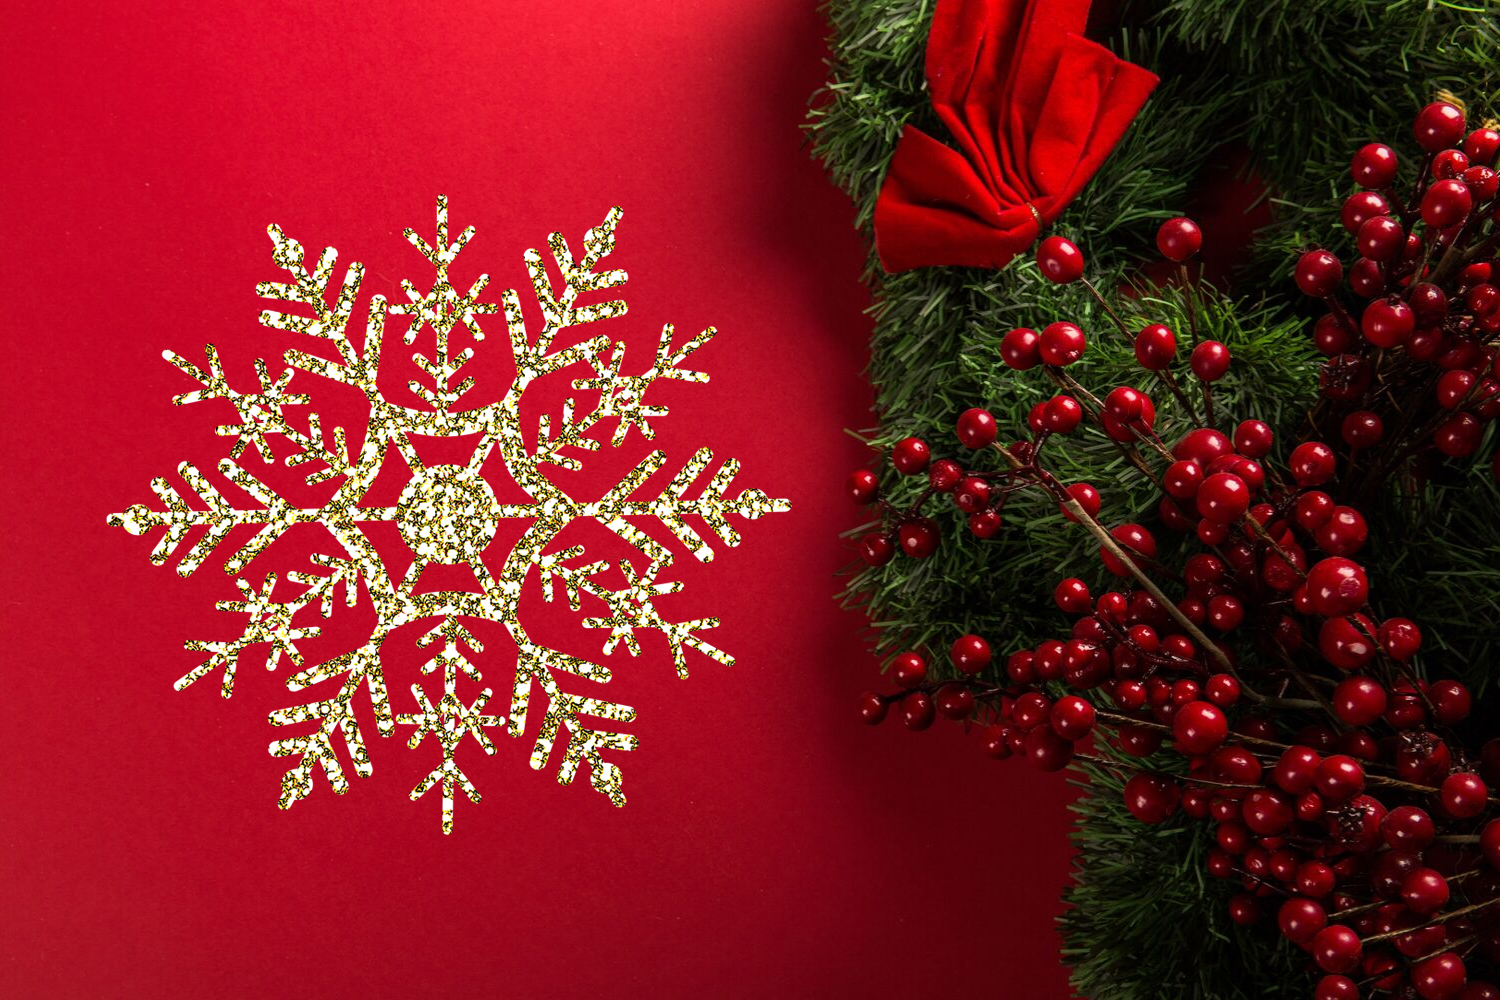 Cute Christmas Clipart- Cute Holiday Graphics Clipart example image 3